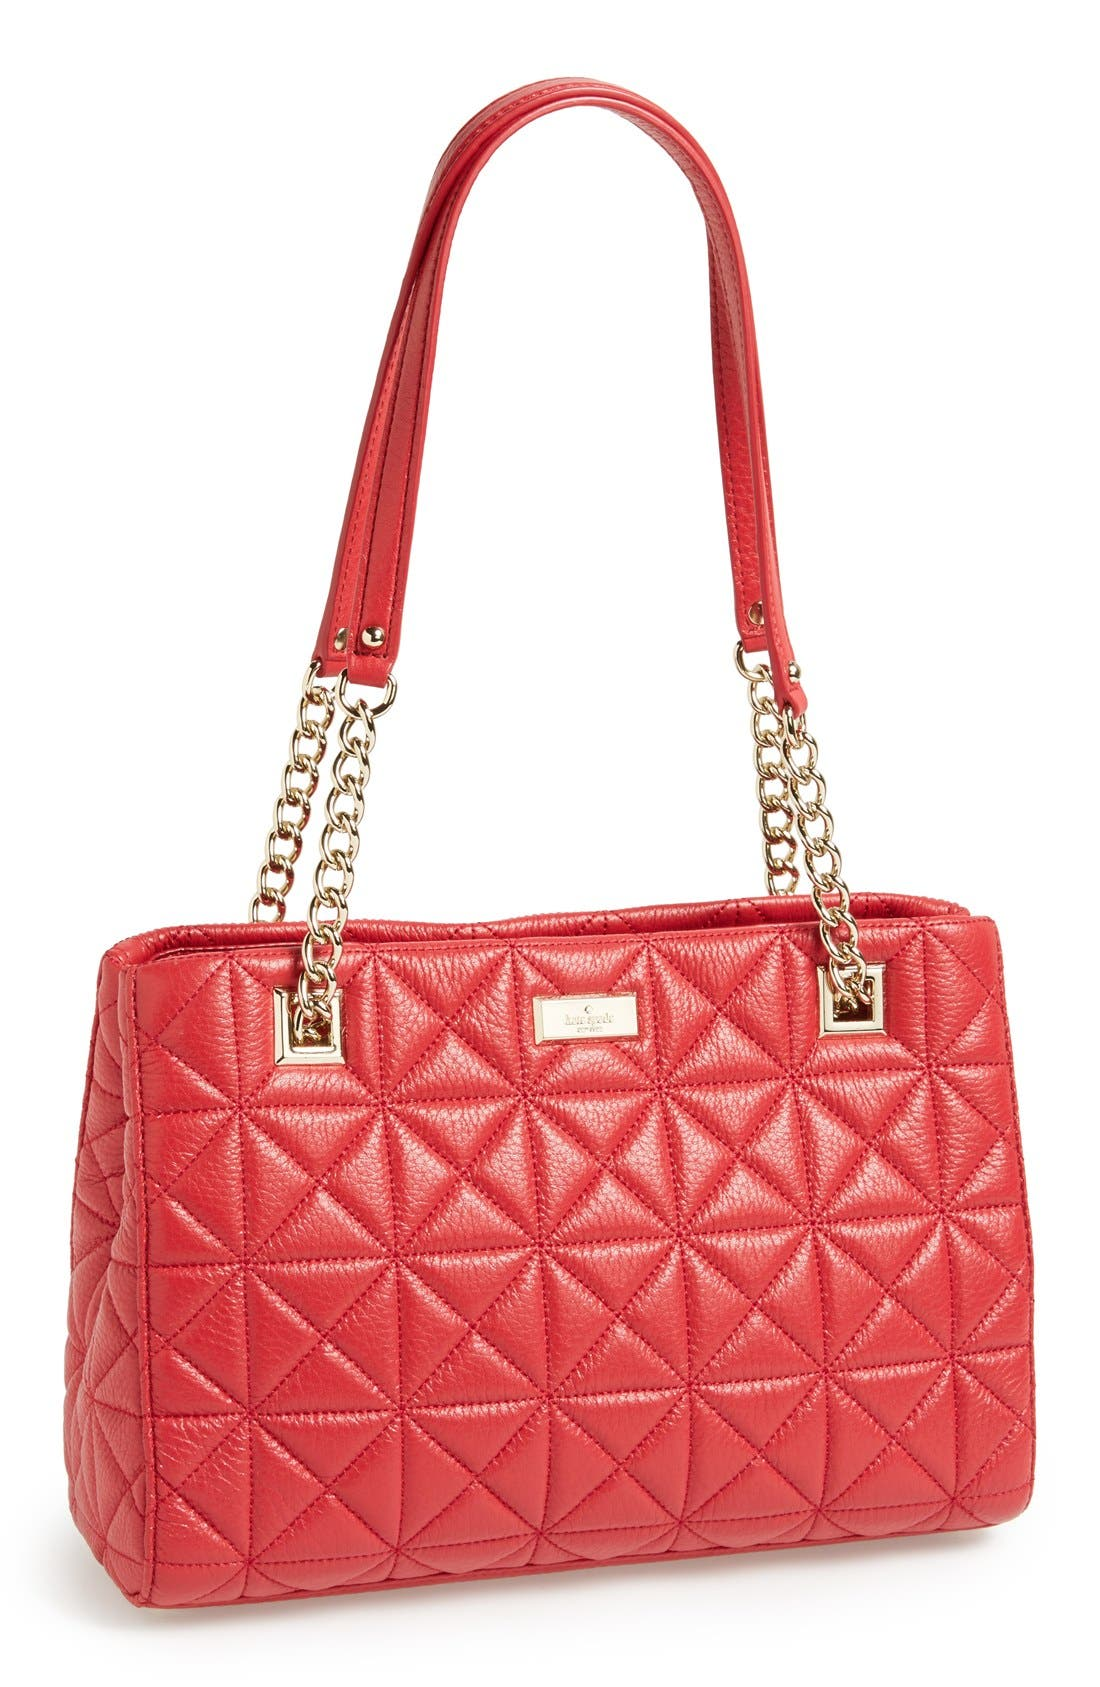 Alternate Image 1 Selected - kate spade new york 'sedgewick place - small phoebe' shoulder bag